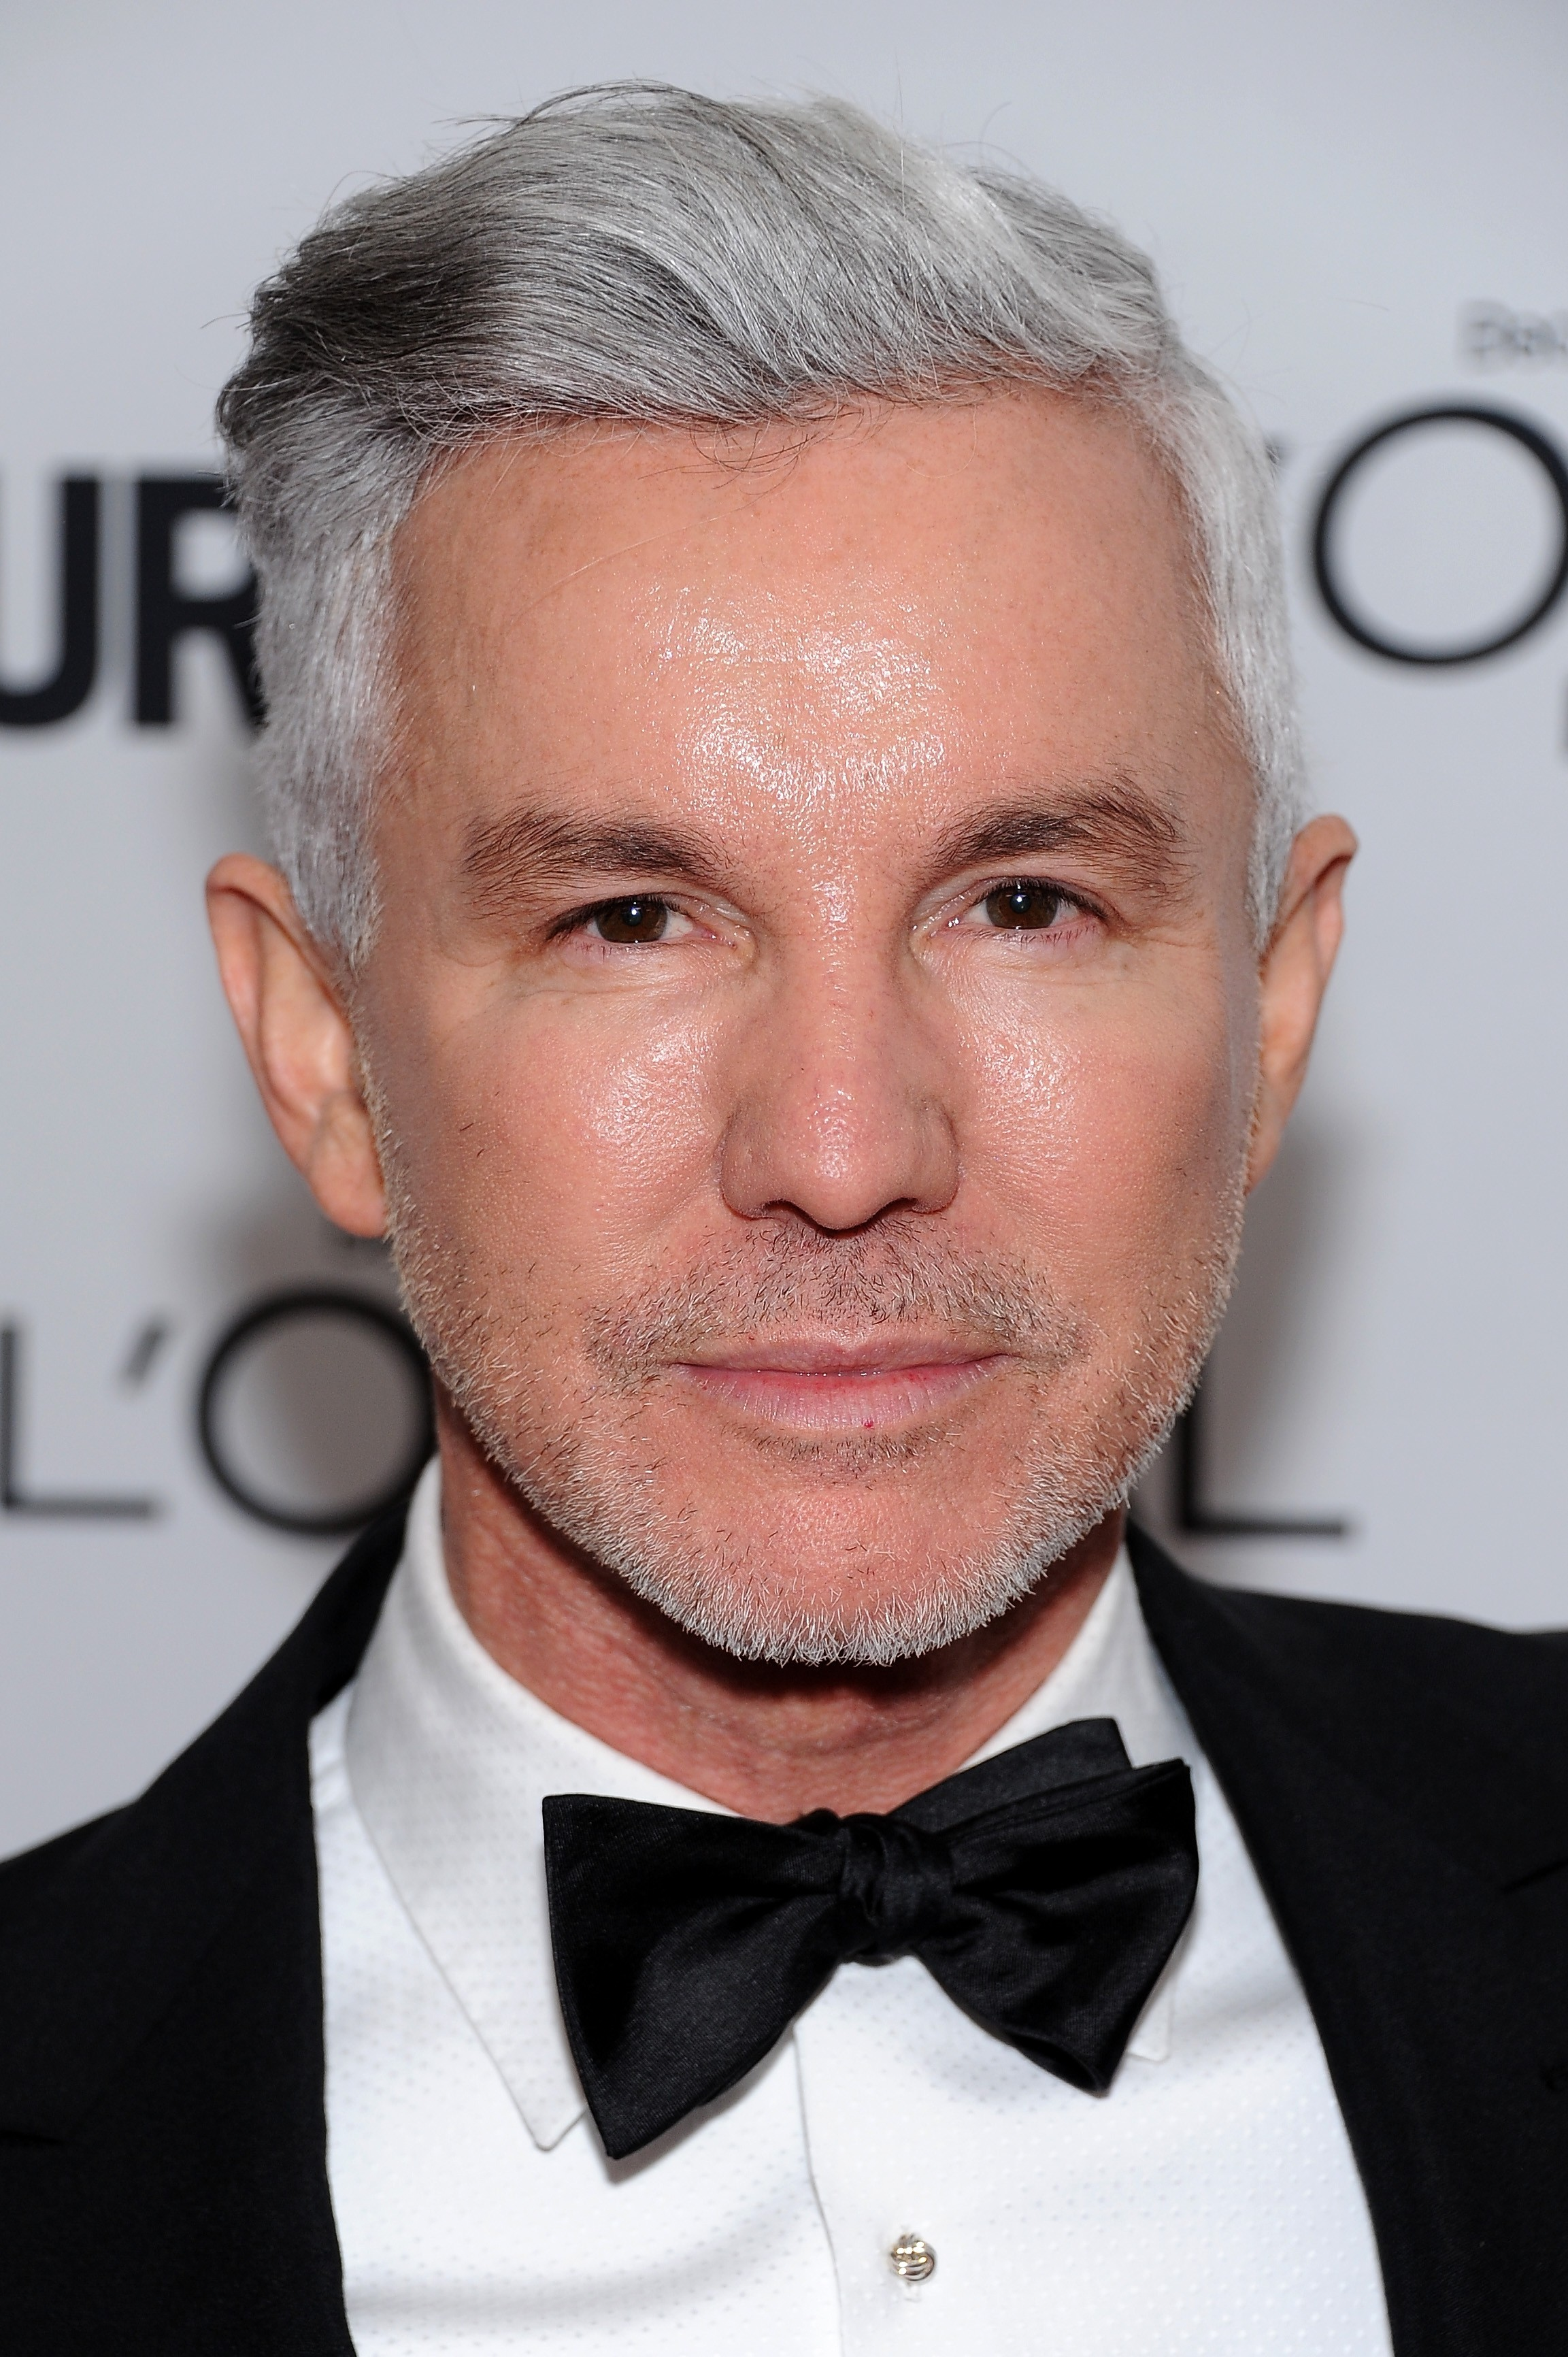 NEW YORK, NY - NOVEMBER 11:  Baz Luhrmann attends Glamour's 23rd annual Women of the Year awards on November 11, 2013 in New York City.  (Photo by Dimitrios Kambouris/Getty Images for Glamour) (Foto: Editora Globo)